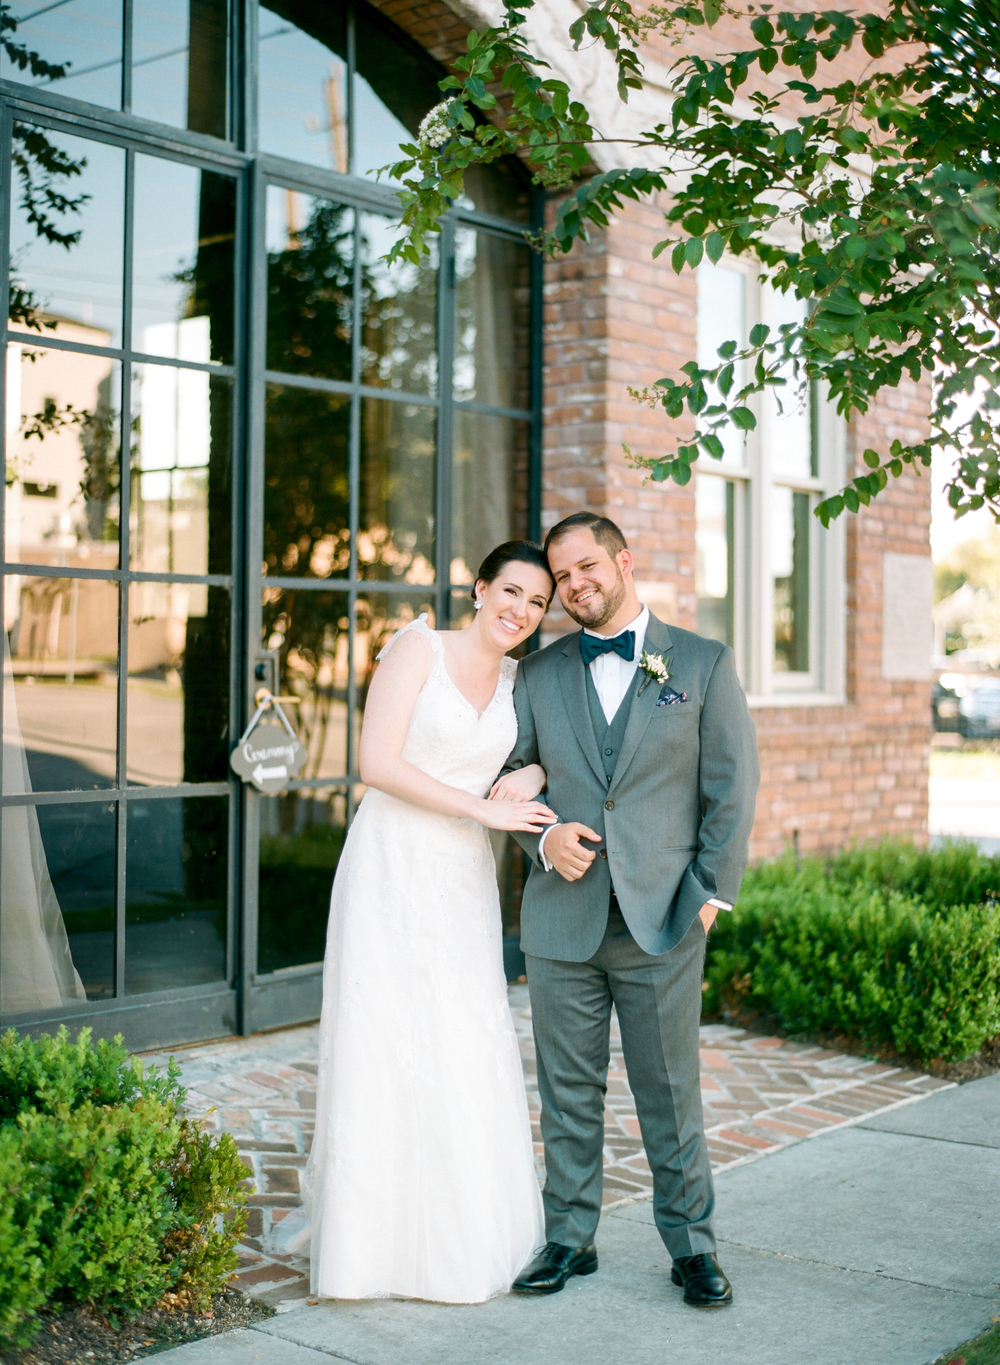 Dana-Fernandez-Photography-Style-Me-Pretty-Houston-Wedding-Photographer-Fine-Art-Film-Station-3-venue-1.jpg